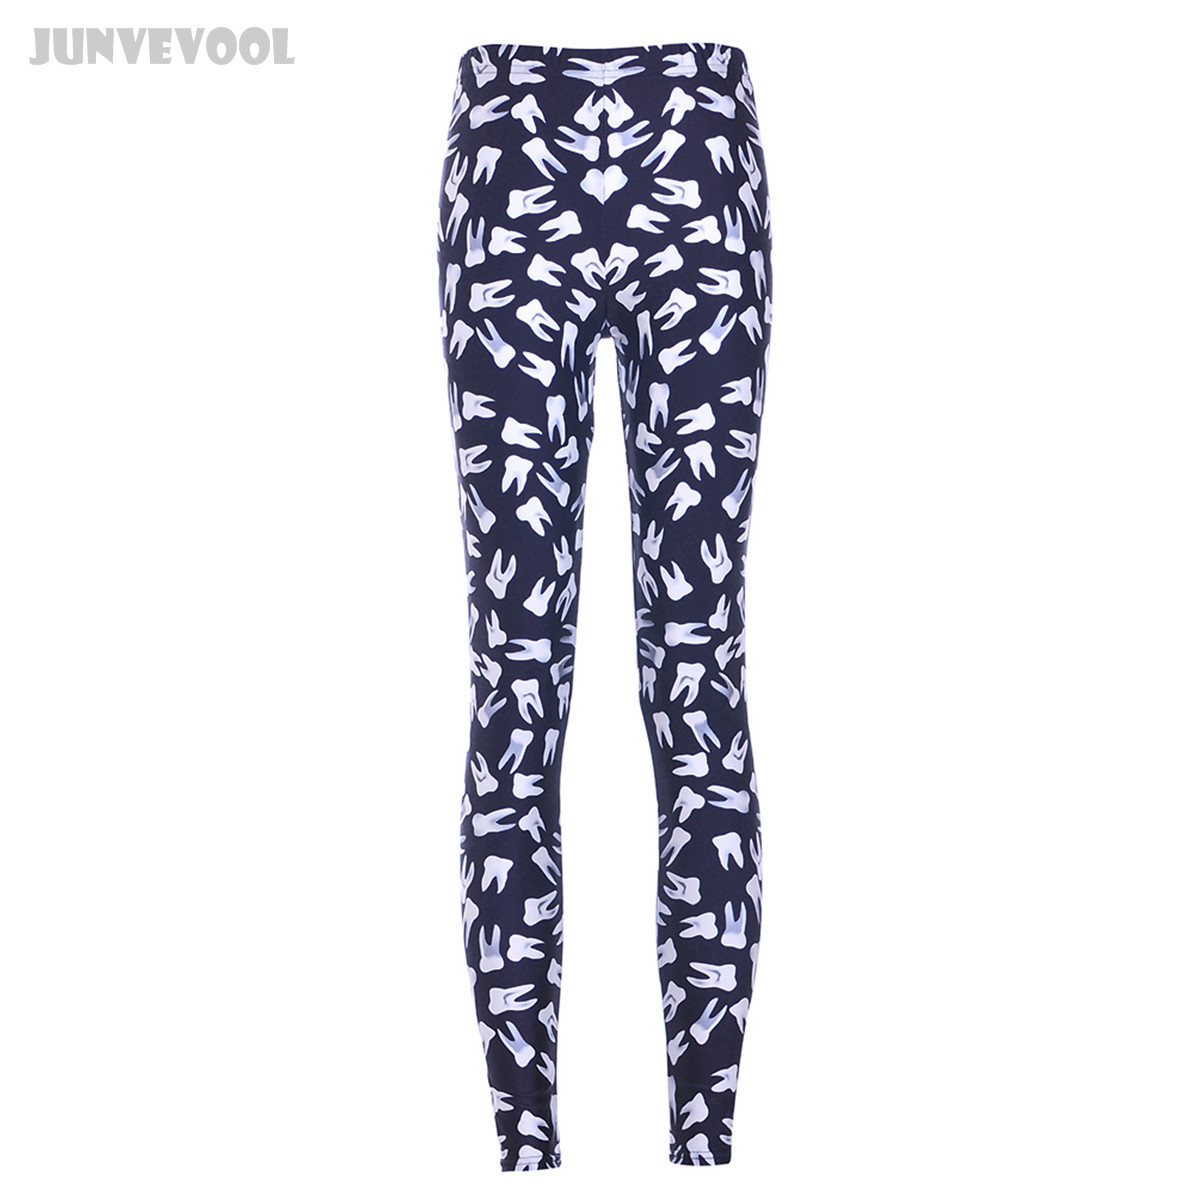 a6103620c293 Fitness Woman Leggings Tooth Printed Trousers Women High Waist Skinny  Stretch Sweatpants Funny Pencil Fit Pants Capris Legging